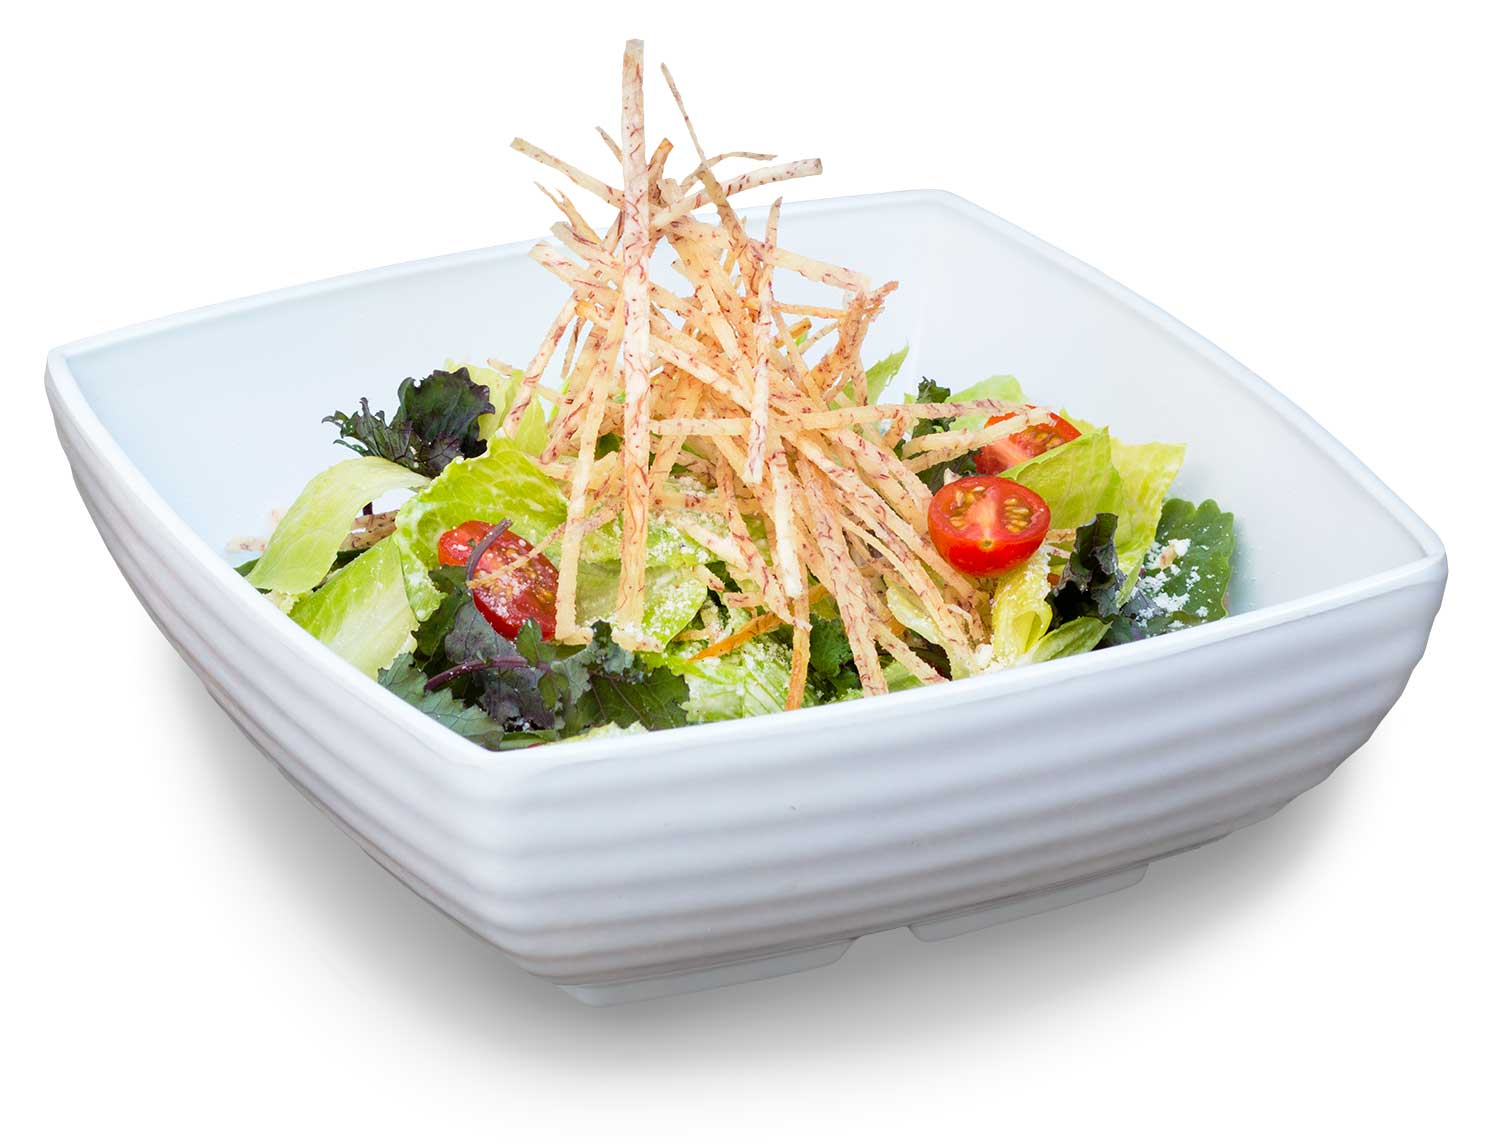 Original Caesar Salad with Crispy Taro, Available at all Burger Lounge locations